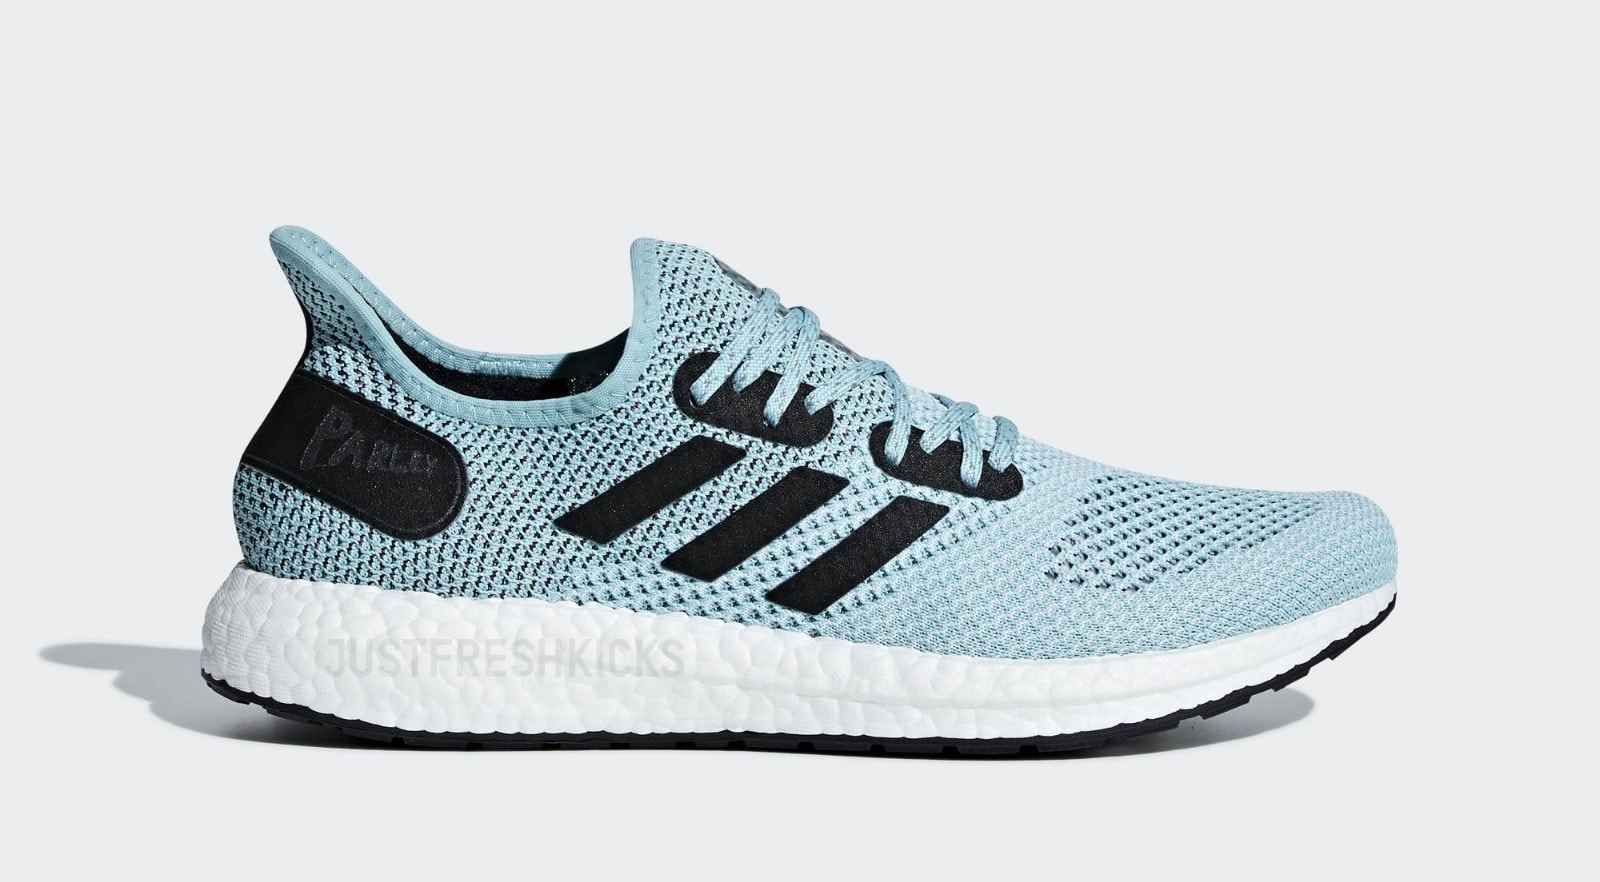 new styles 5c1cb c2bb4 adidas and Parley are bringing more incredible technology to the table with  their latest silhouette. Using adidas  new Speedfactories around the world,  ...